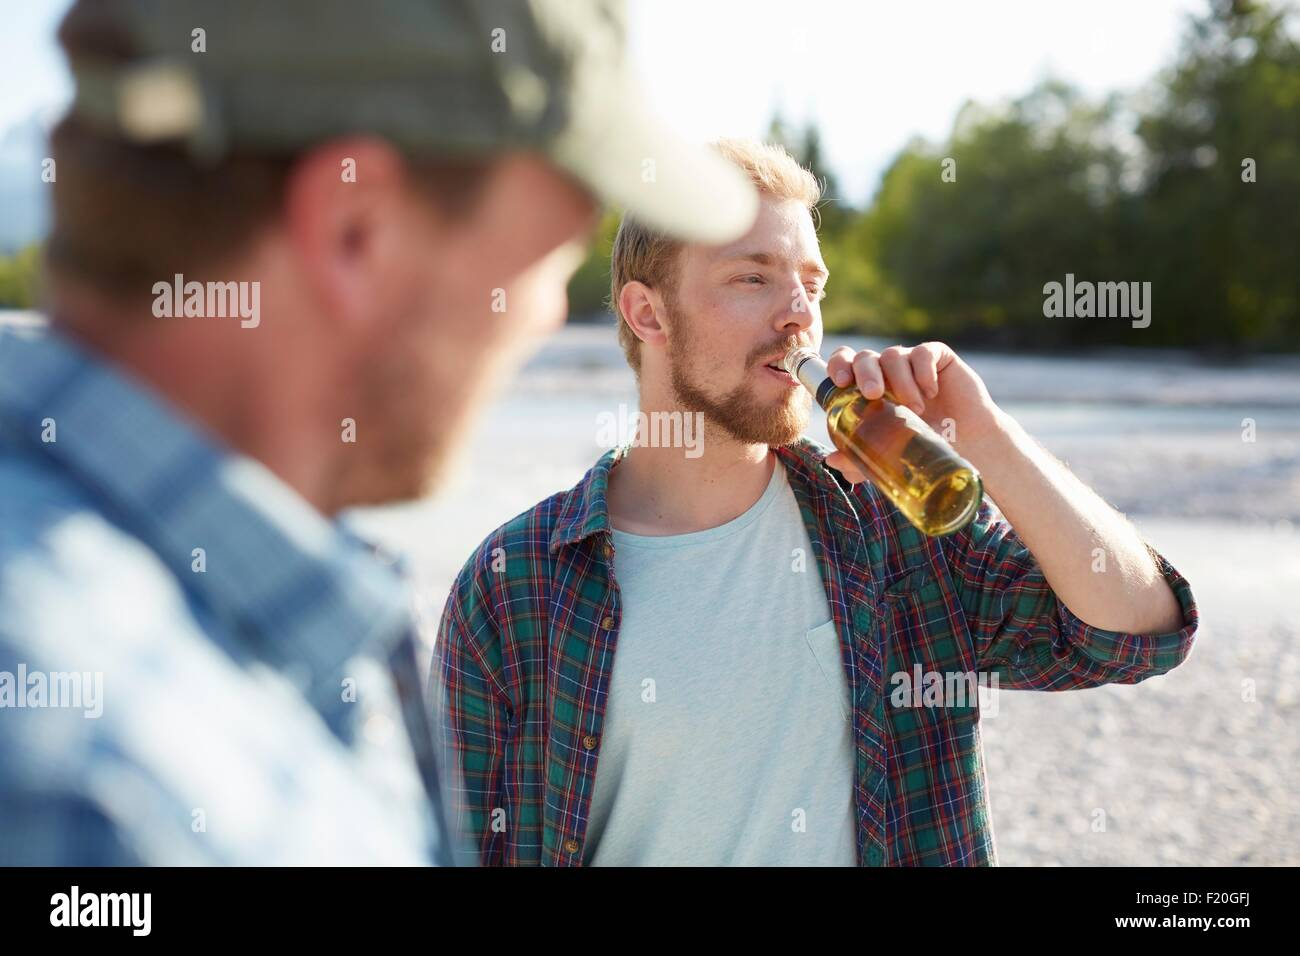 Young man taking a drink from a beer bottle, looking away - Stock Image